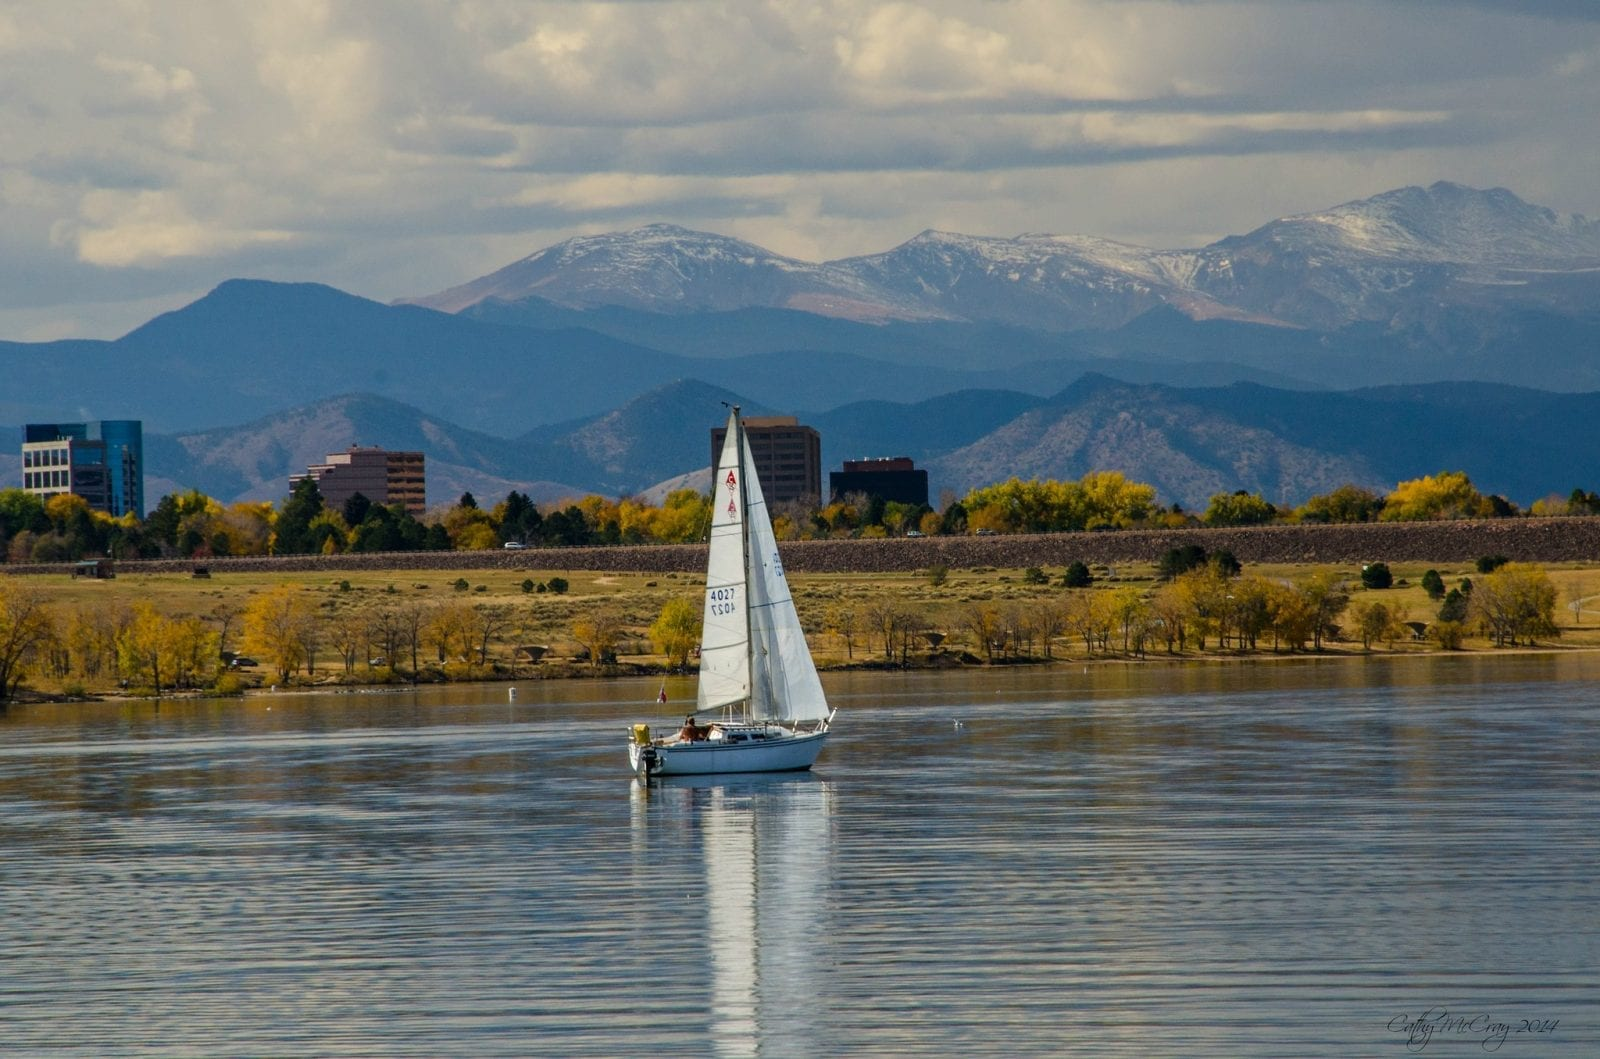 Image of a sailboat on the Cherry Creek Reservoir